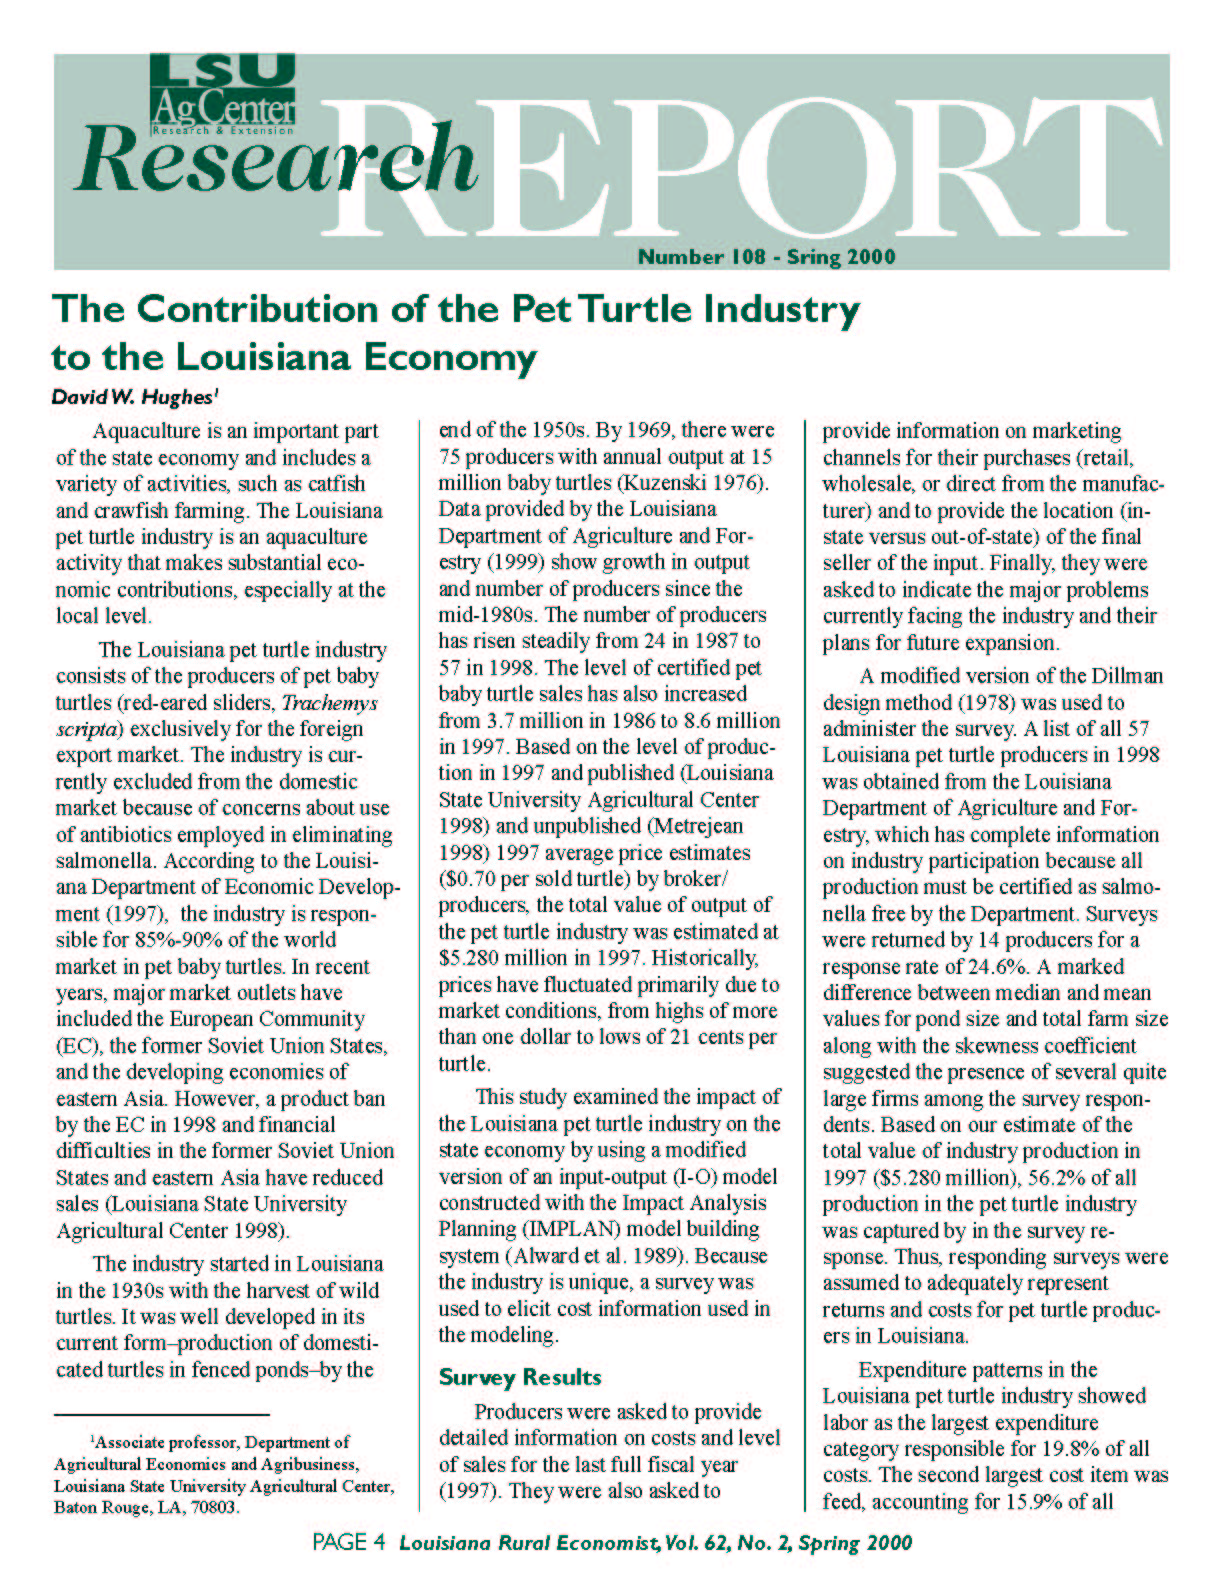 The Contribution of the Pet Turtle Industry to the Louisiana Economy (Spring 2000)